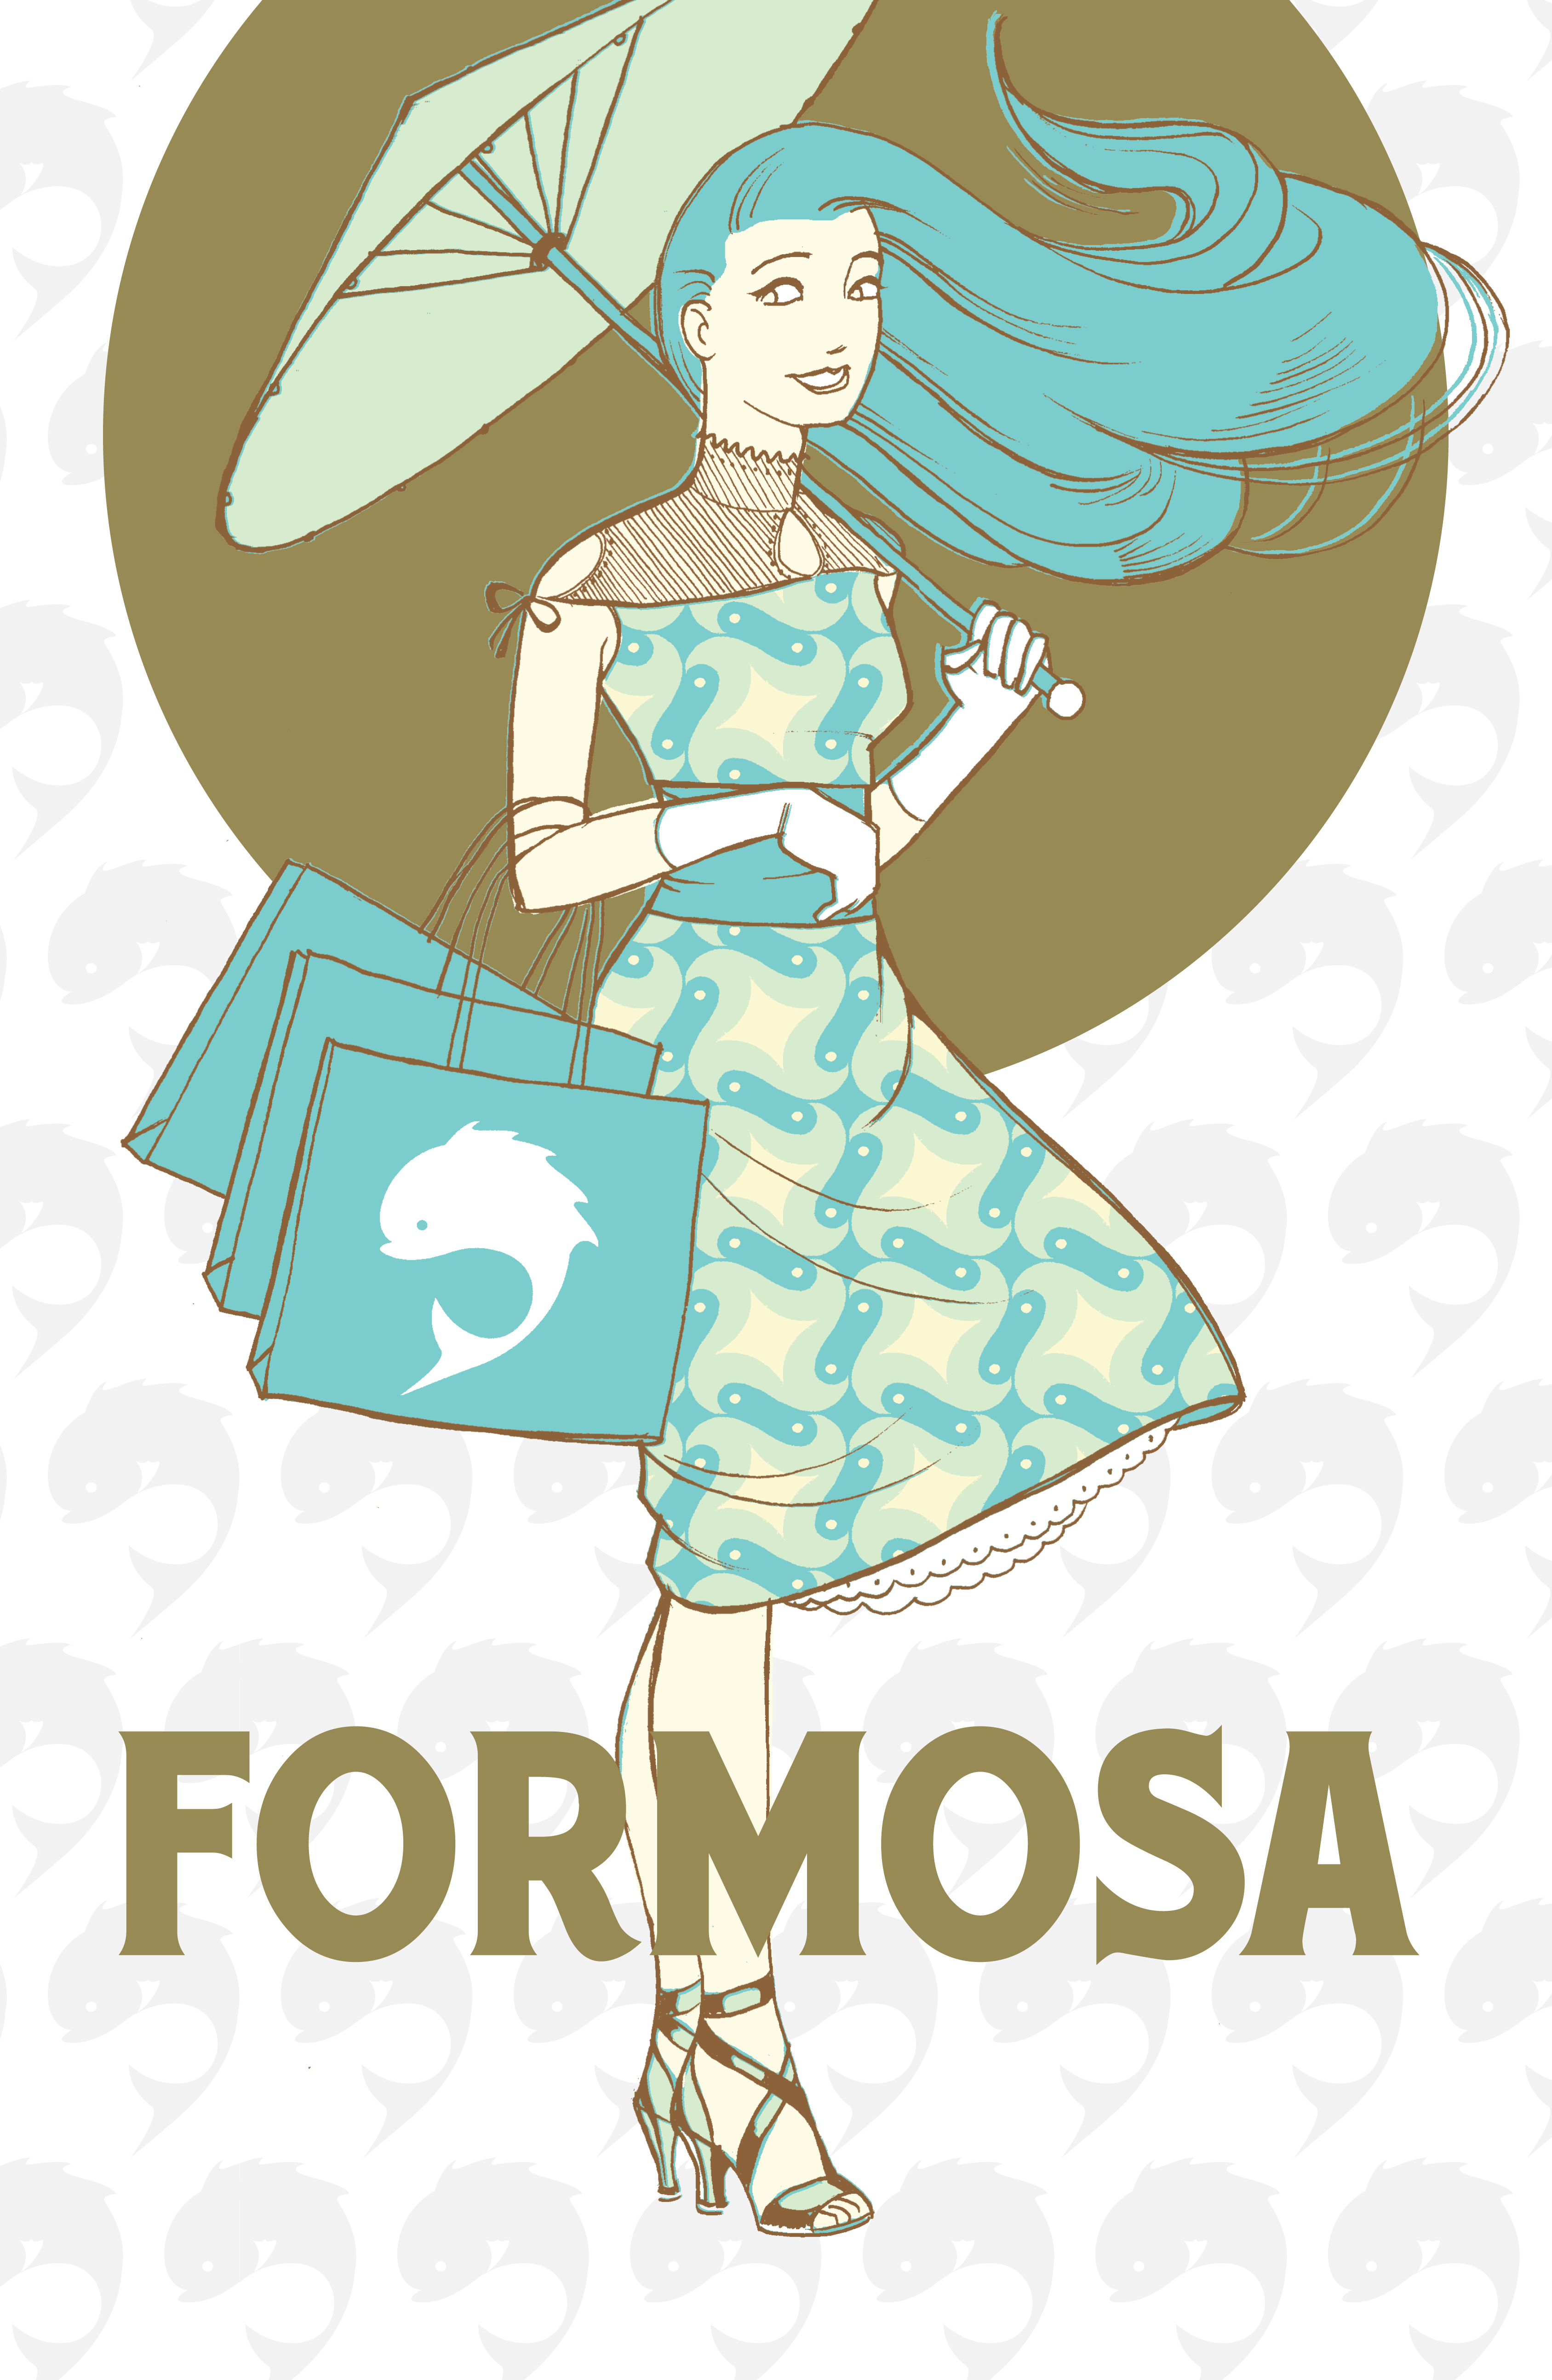 The formosa girl peter litster i took a slightly labor intensive approach early on by using layered bitmaps to simulate the look of vintage lithography ccuart Choice Image